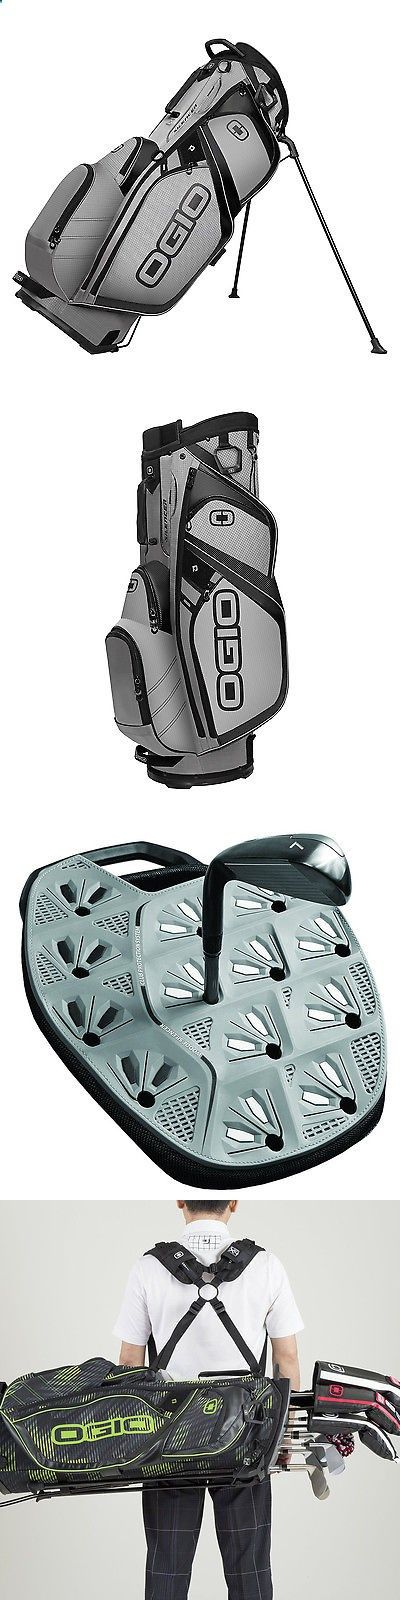 Golf Bags - Golf Club Bags 30109: Ogio Silencer Stand Protective And Quiet Golf Bag With 14-Way Top, Pewter Gray BUY IT NOW ONLY: $171.99